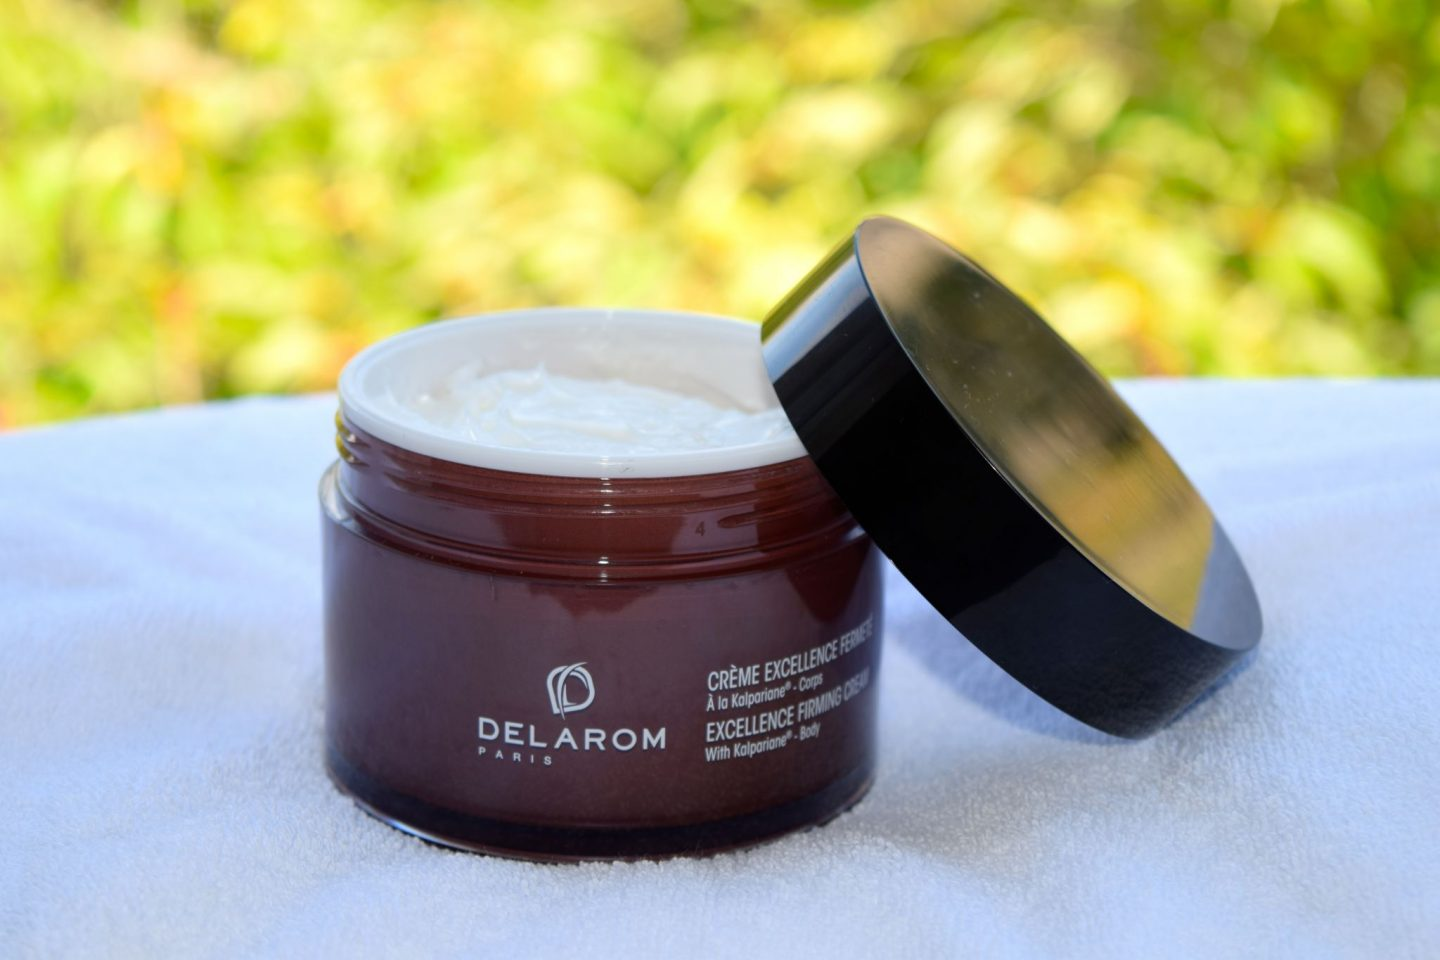 Delarom Excellence Firming Pot